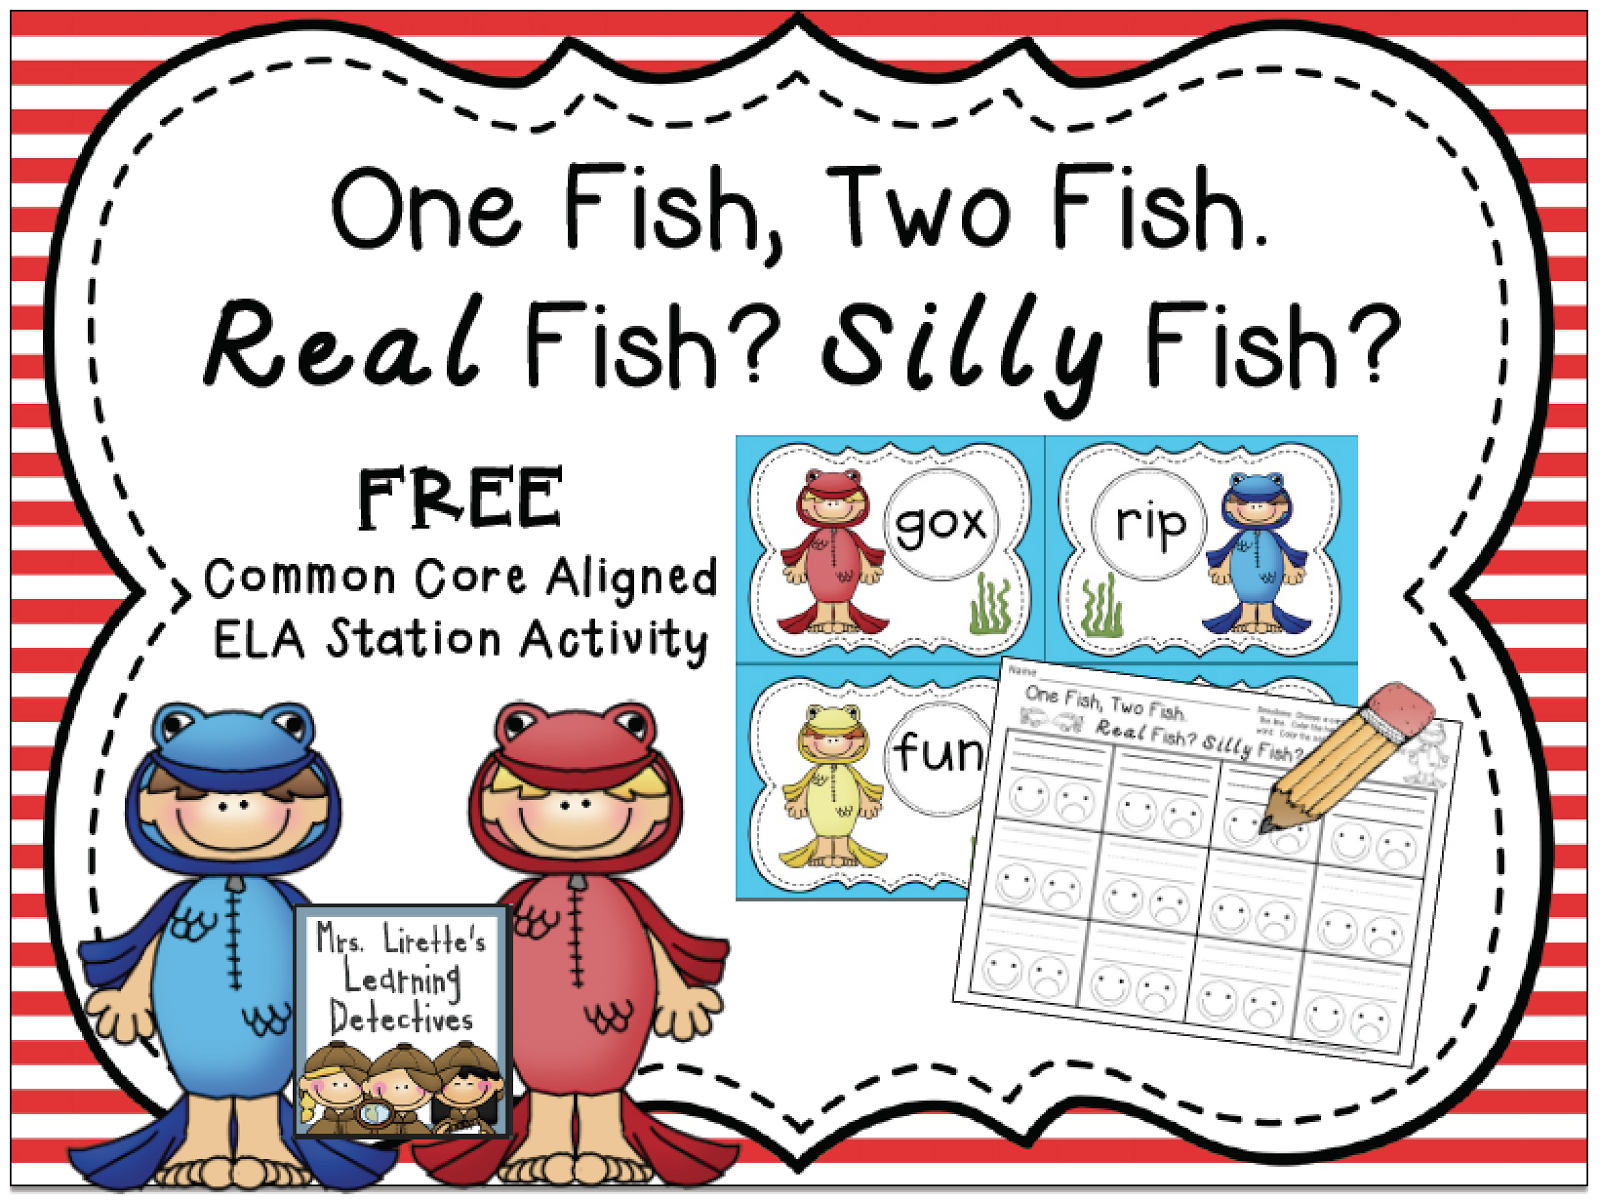 https://www.teacherspayteachers.com/Product/One-Fish-Two-Fish-Real-Fish-Silly-Fish-FREE-1730446